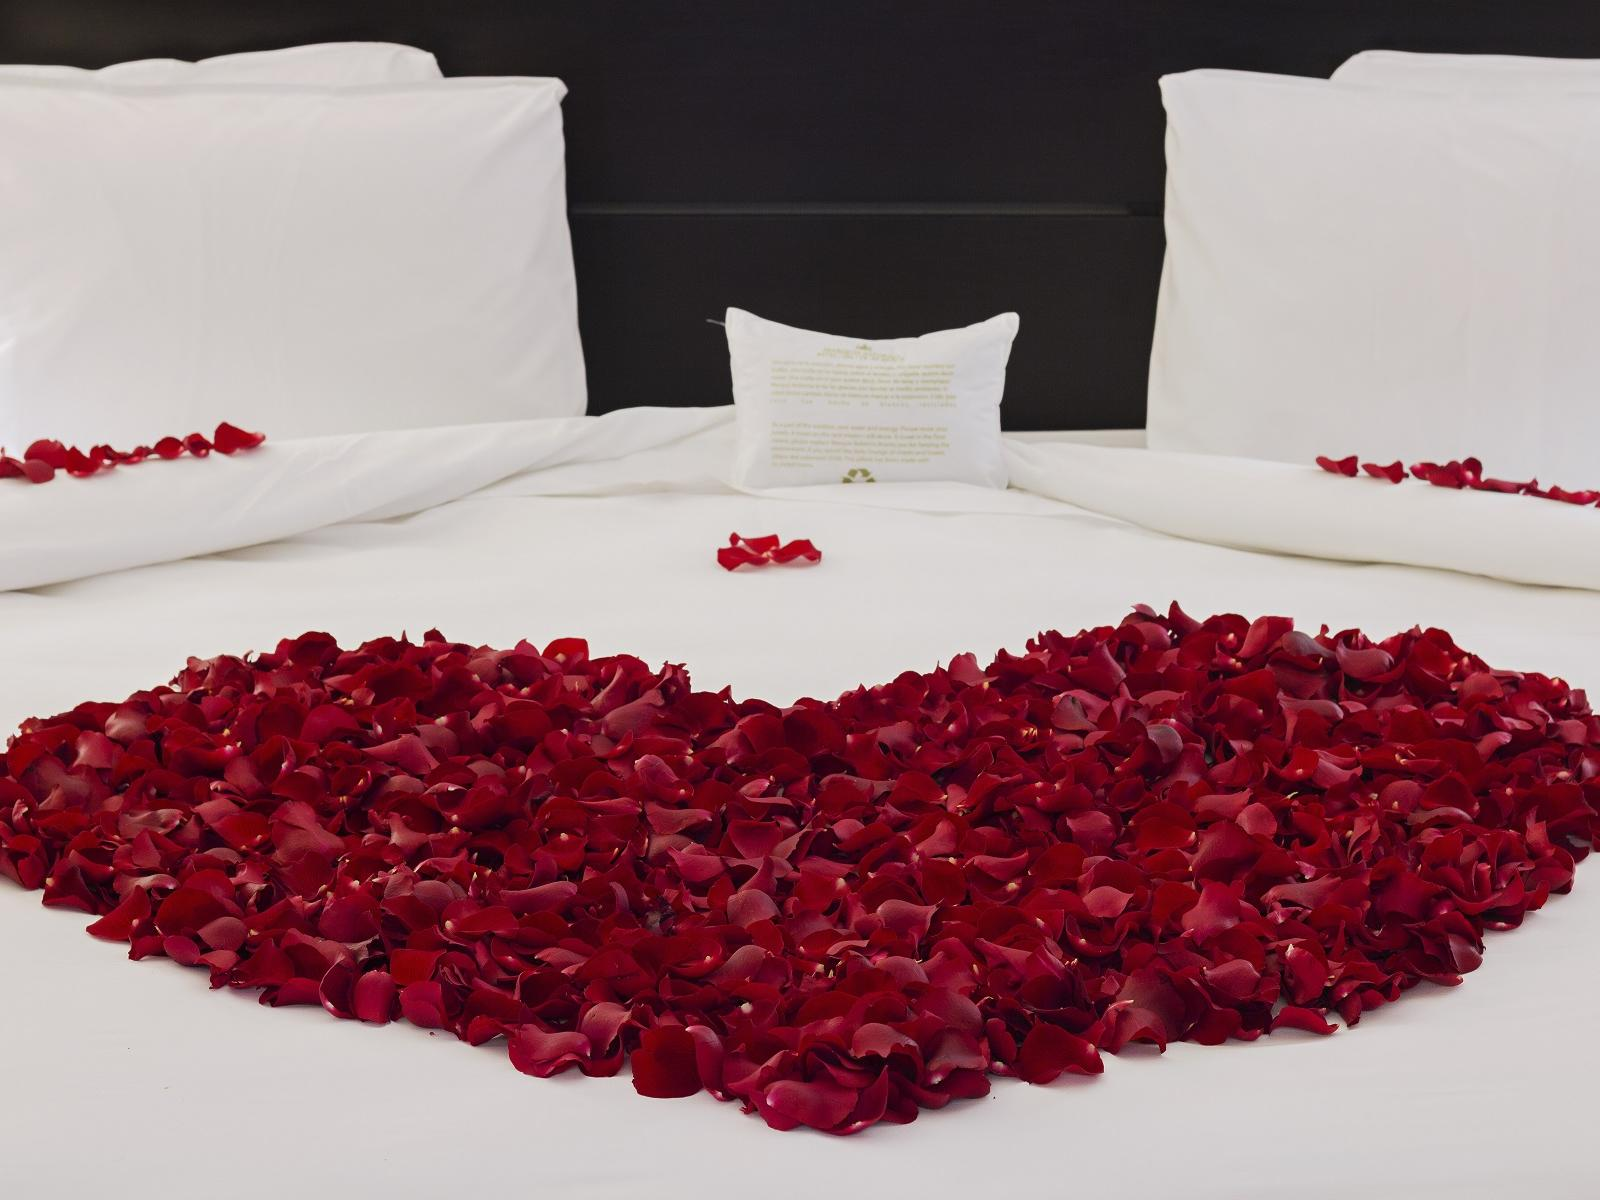 Honeymoon Bed at Marquis Reforma